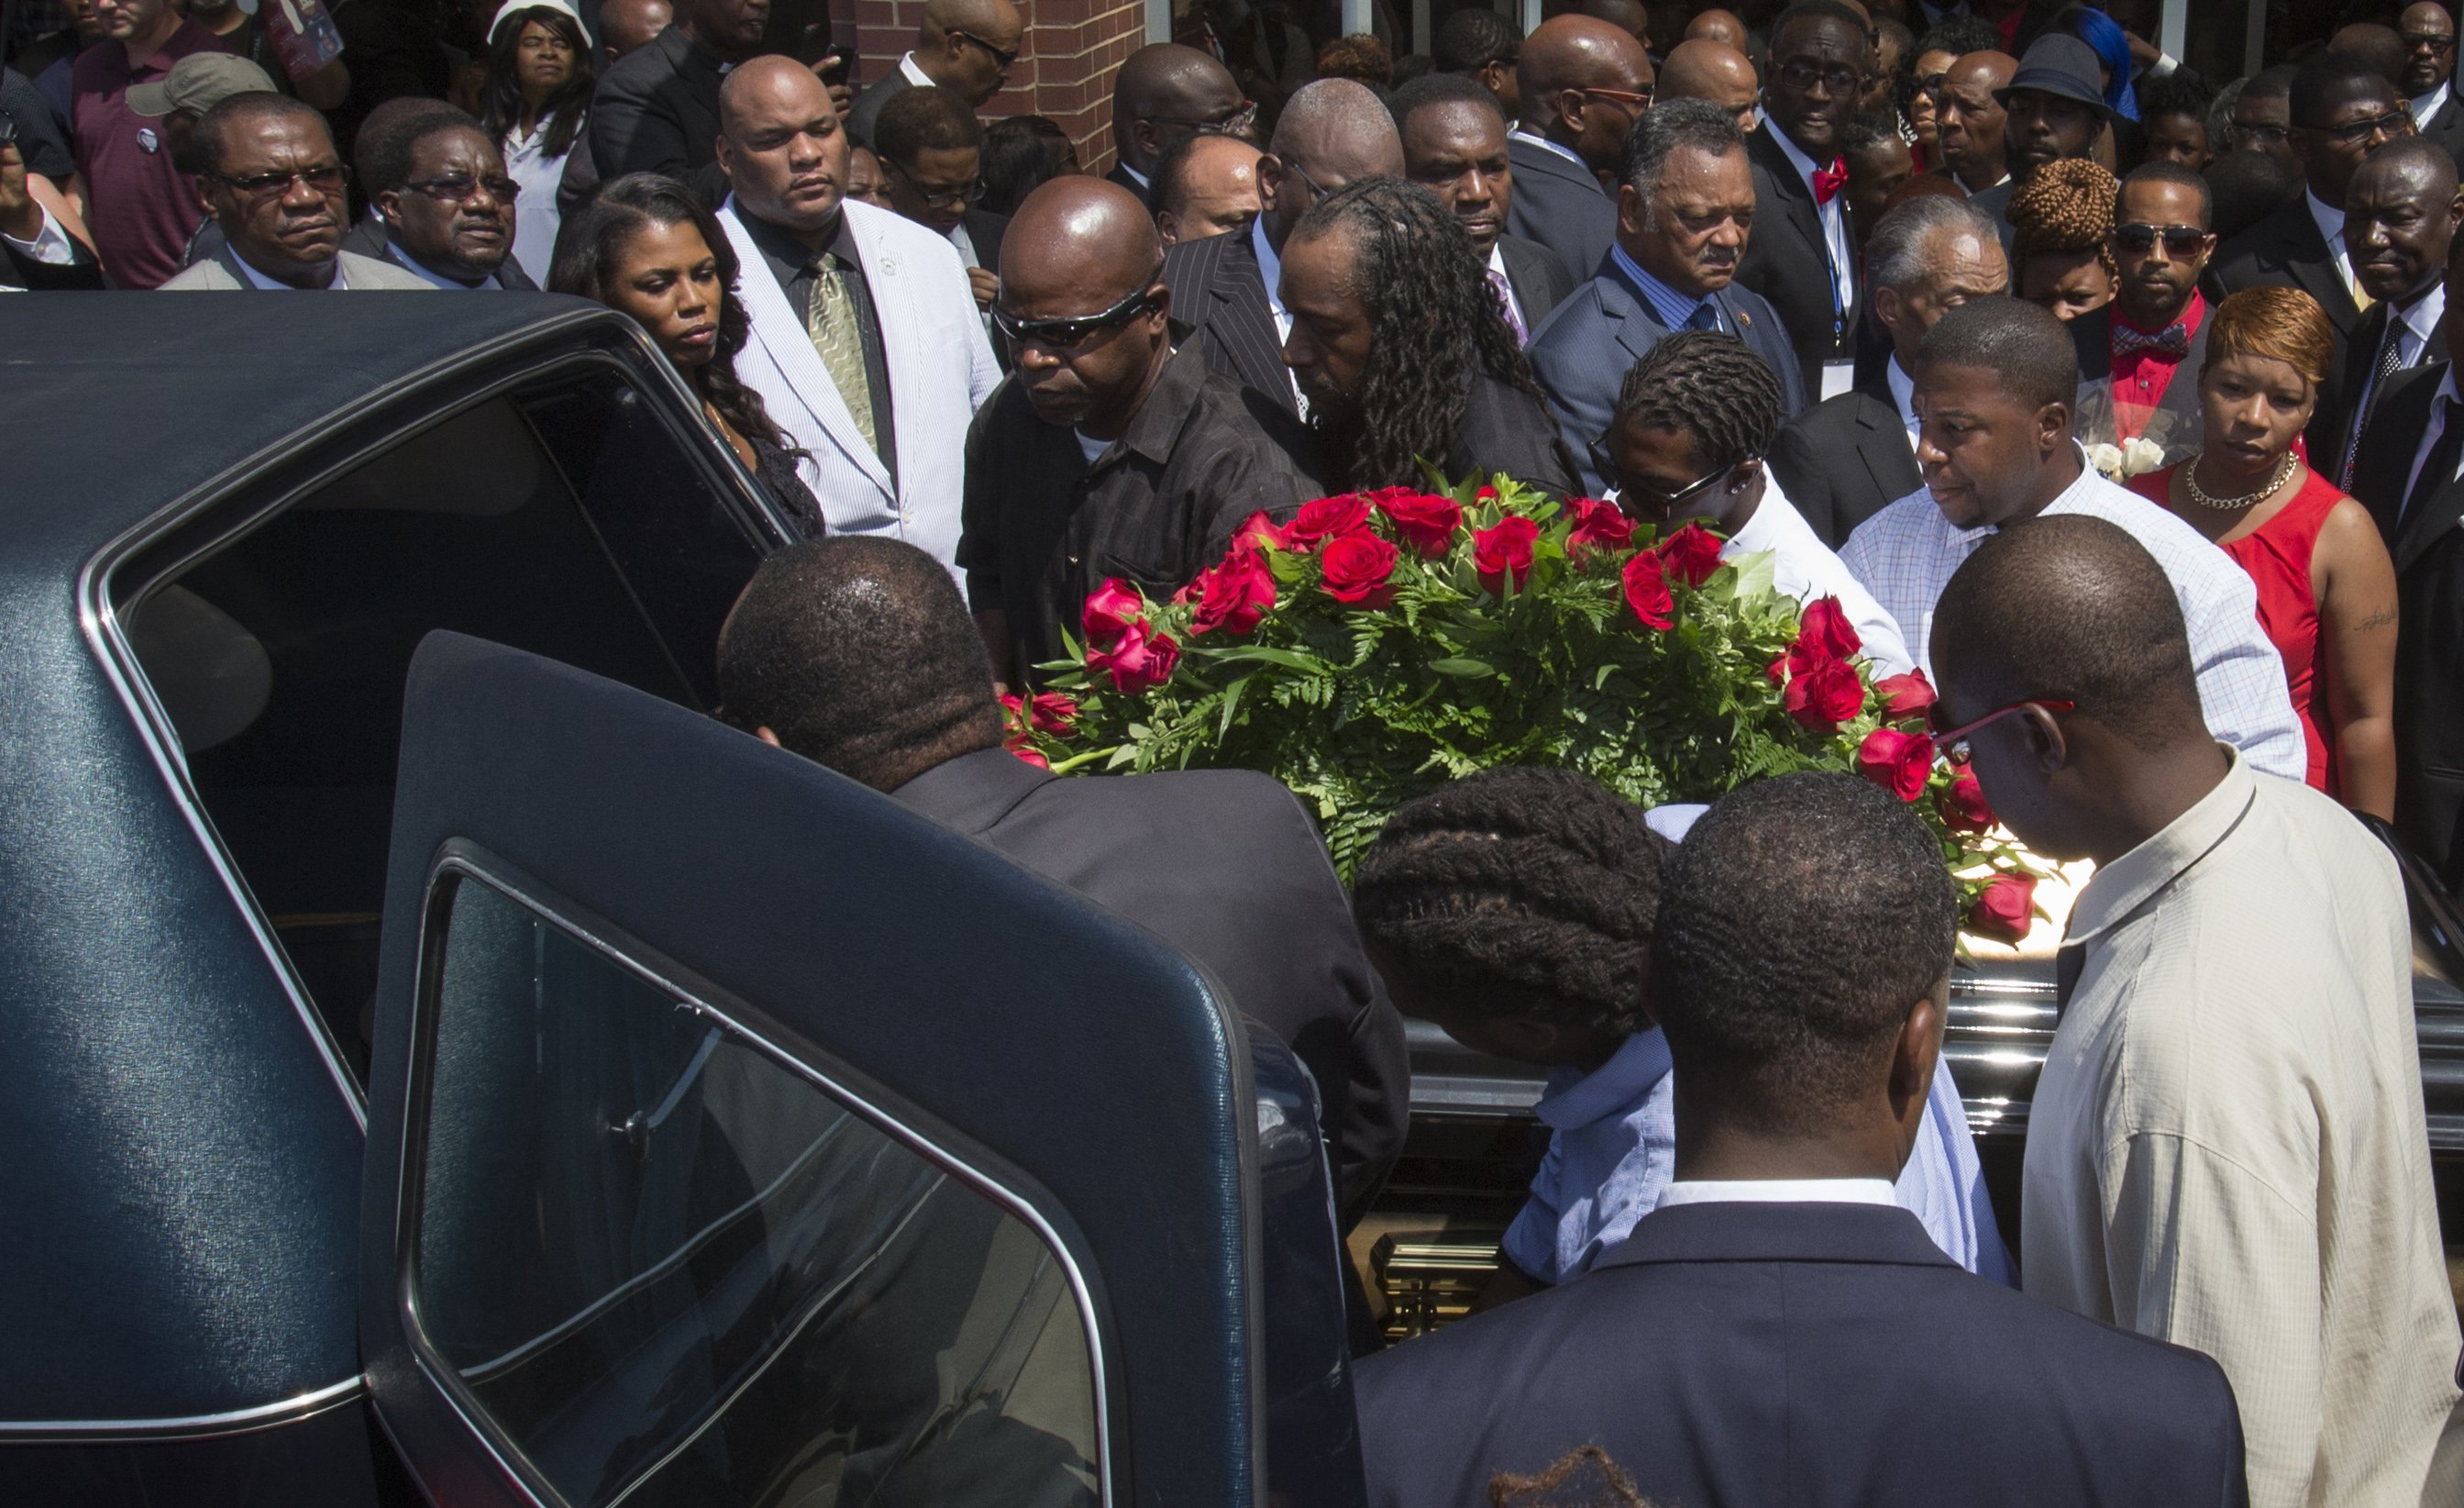 Lesley McSpadden (R, in red) watches as the casket containing the body of her son Michael Brown is lifted into a hearse after his funeral services at the Friendly Temple Missionary Baptist Church in St. Louis on Aug. 25, 2014.